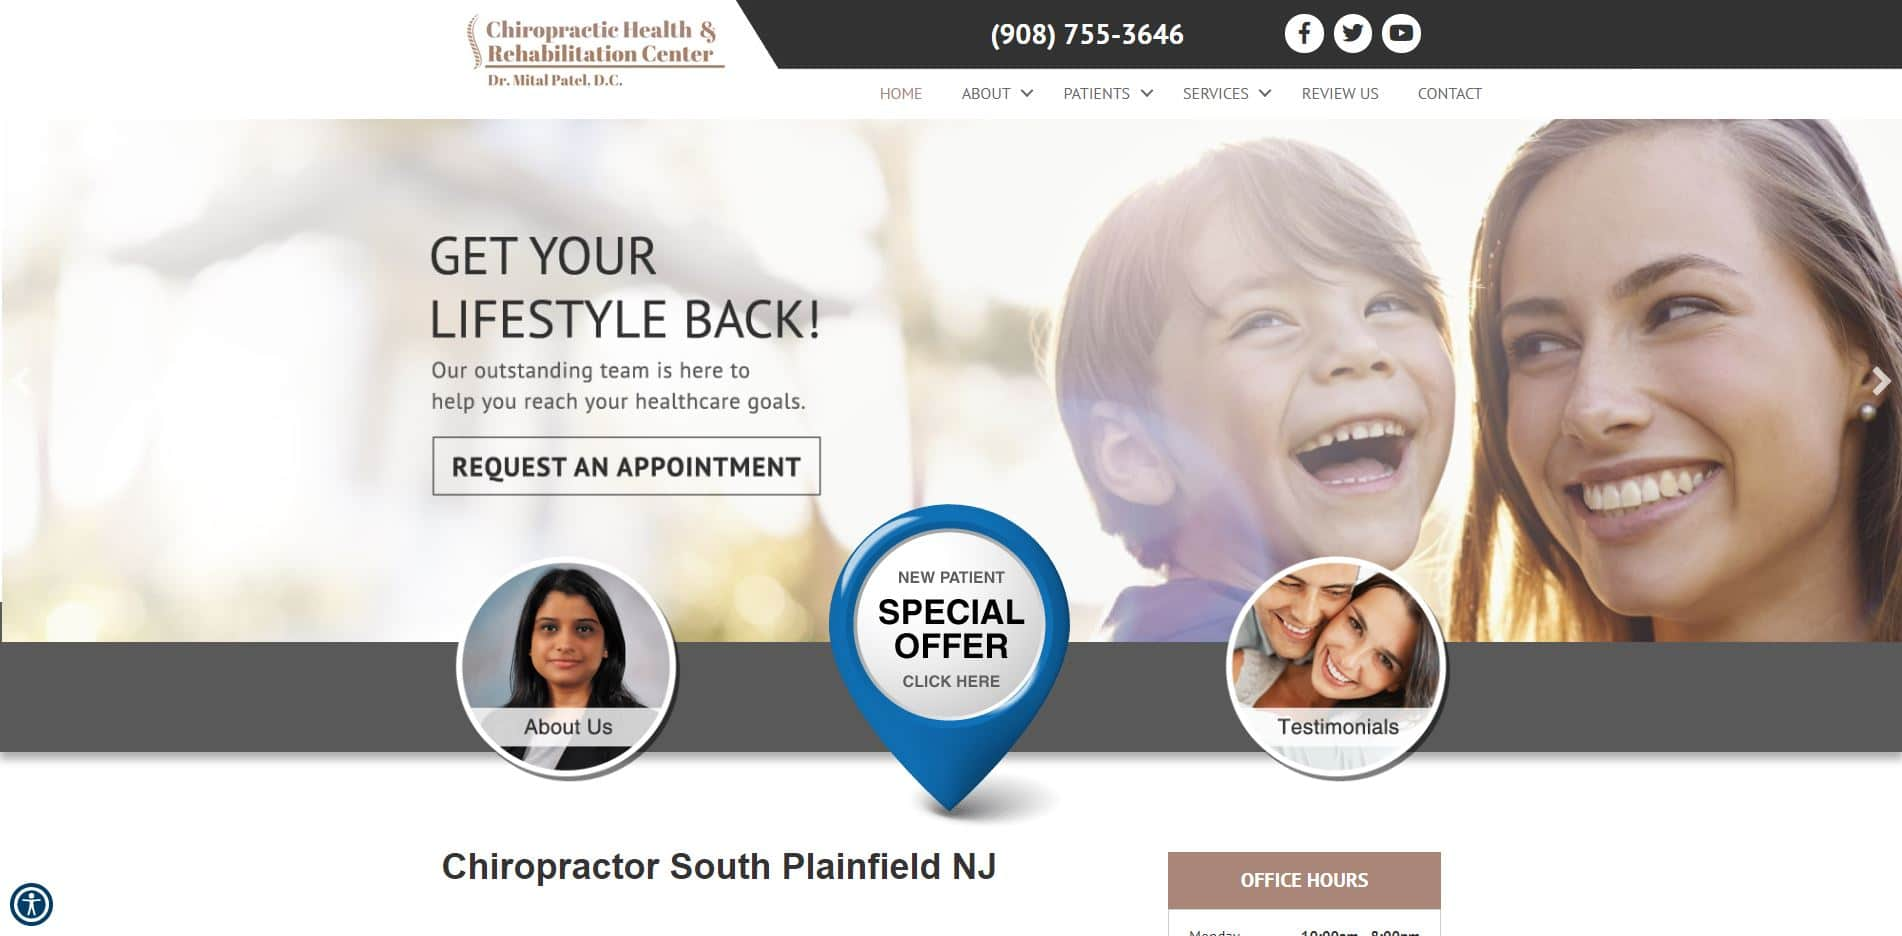 Chiropractor in South Plainfield